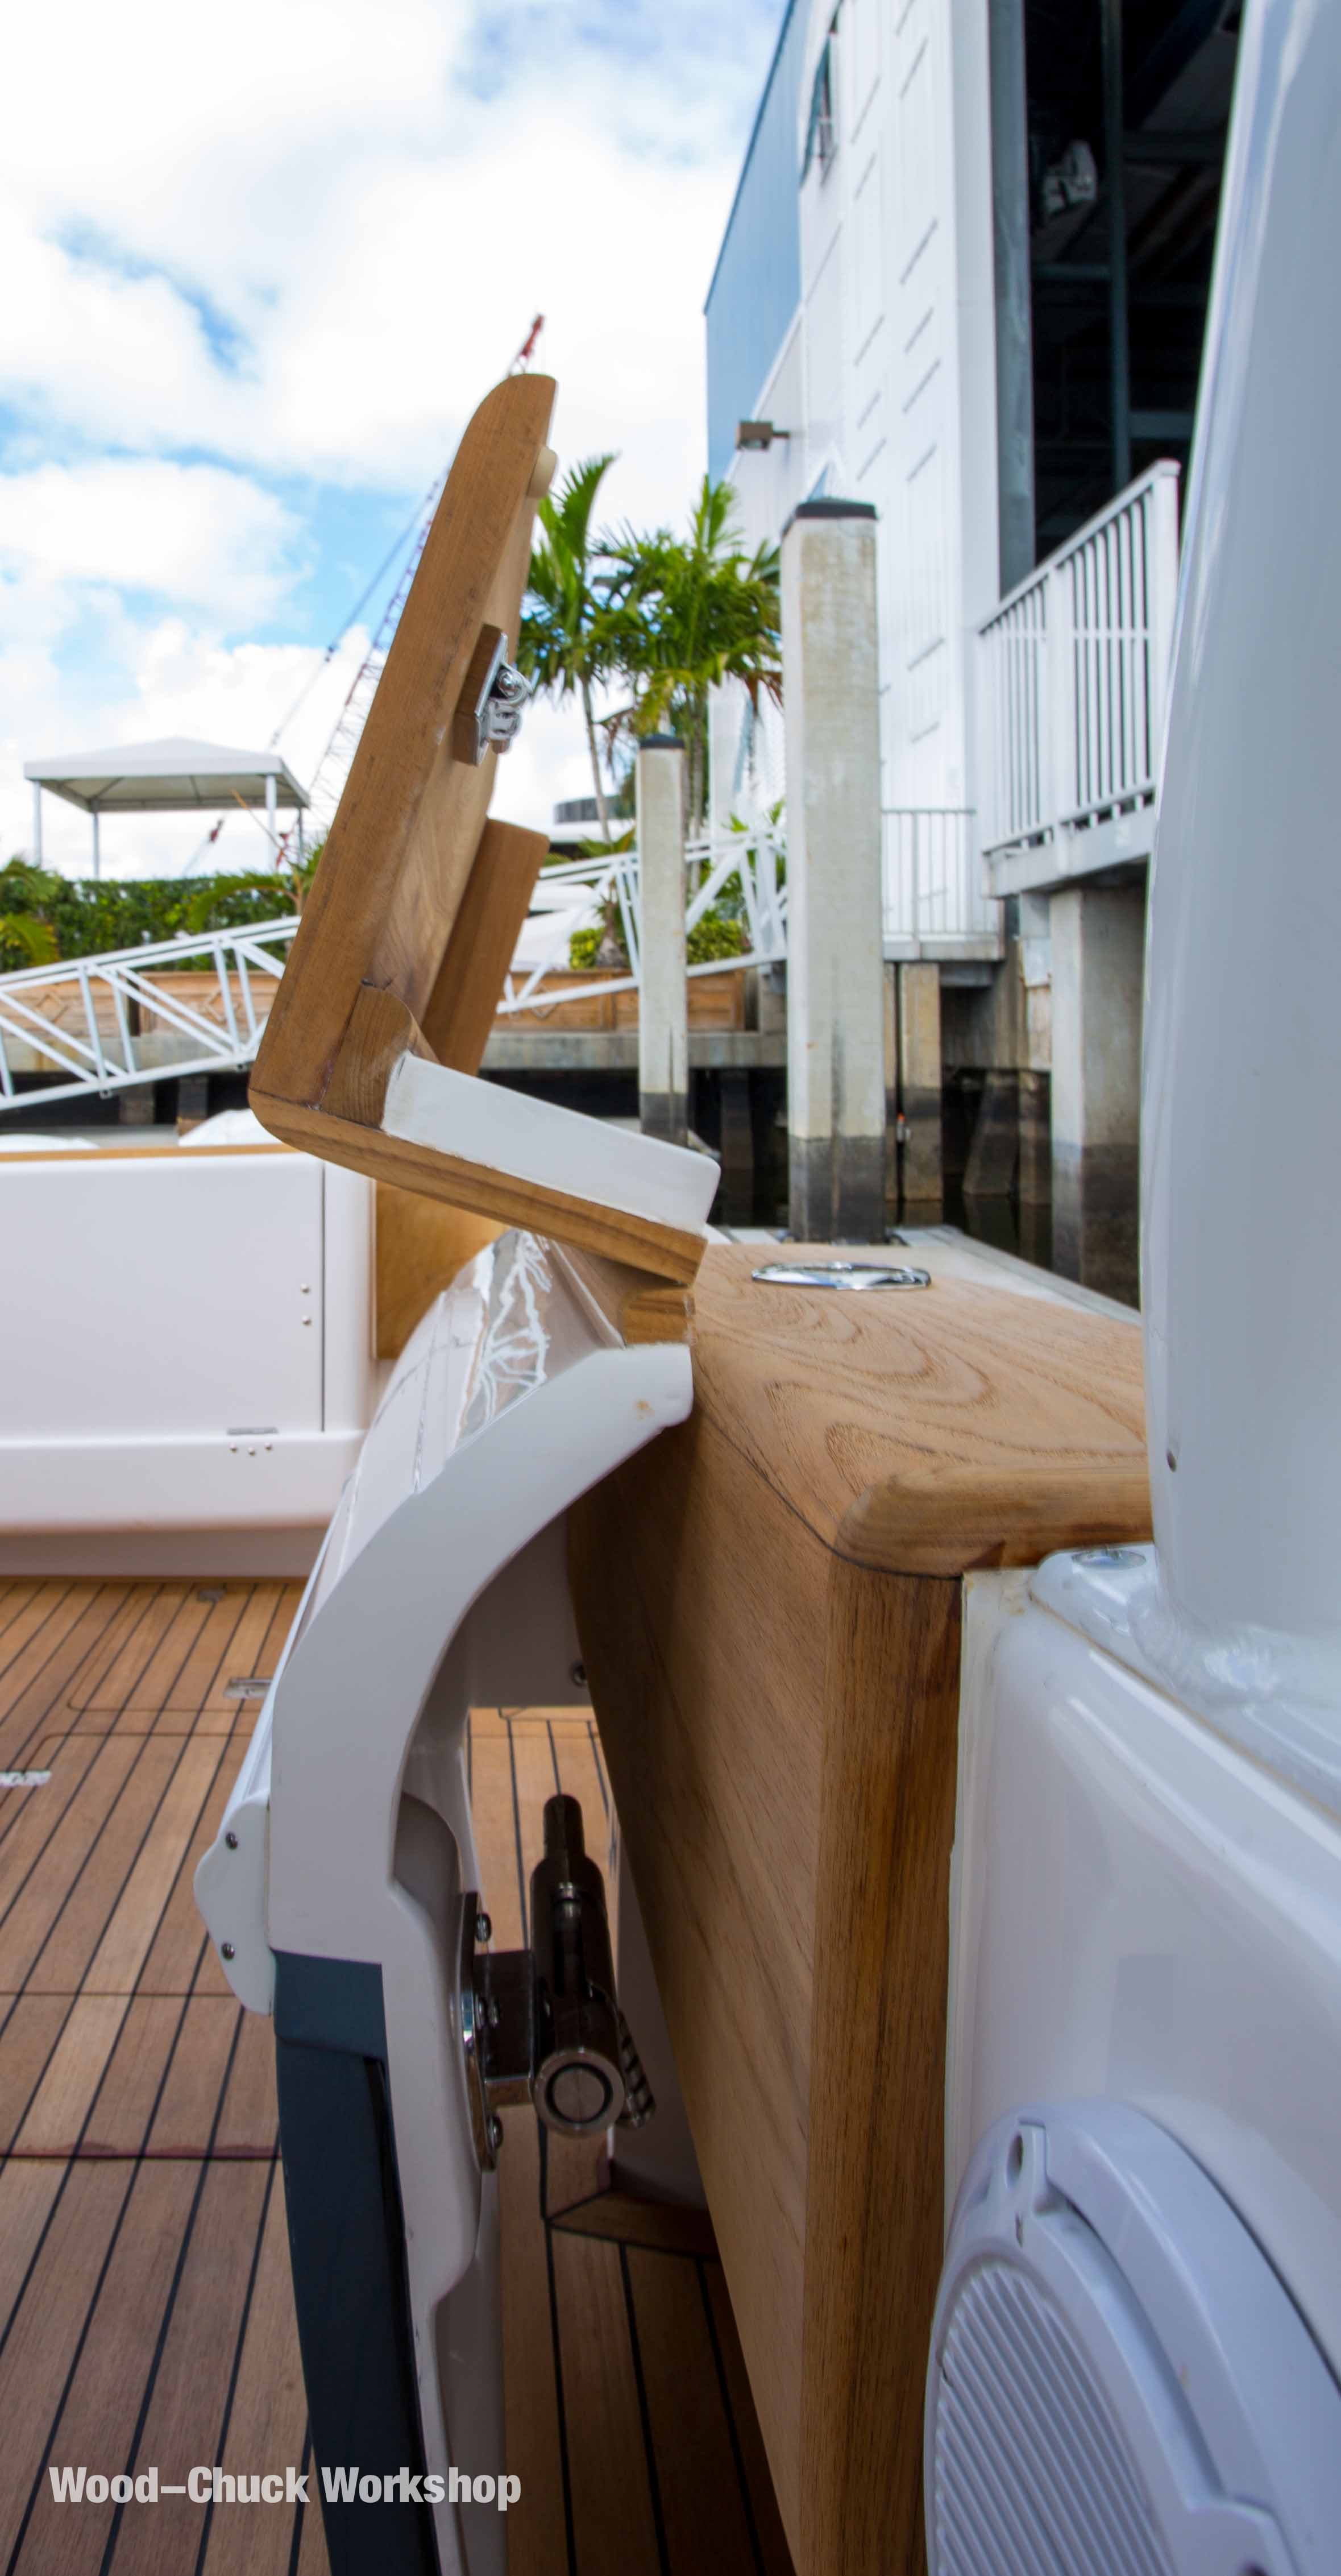 Cover Boards and bing Yacht Carpentry by Wood Chuck Workshop